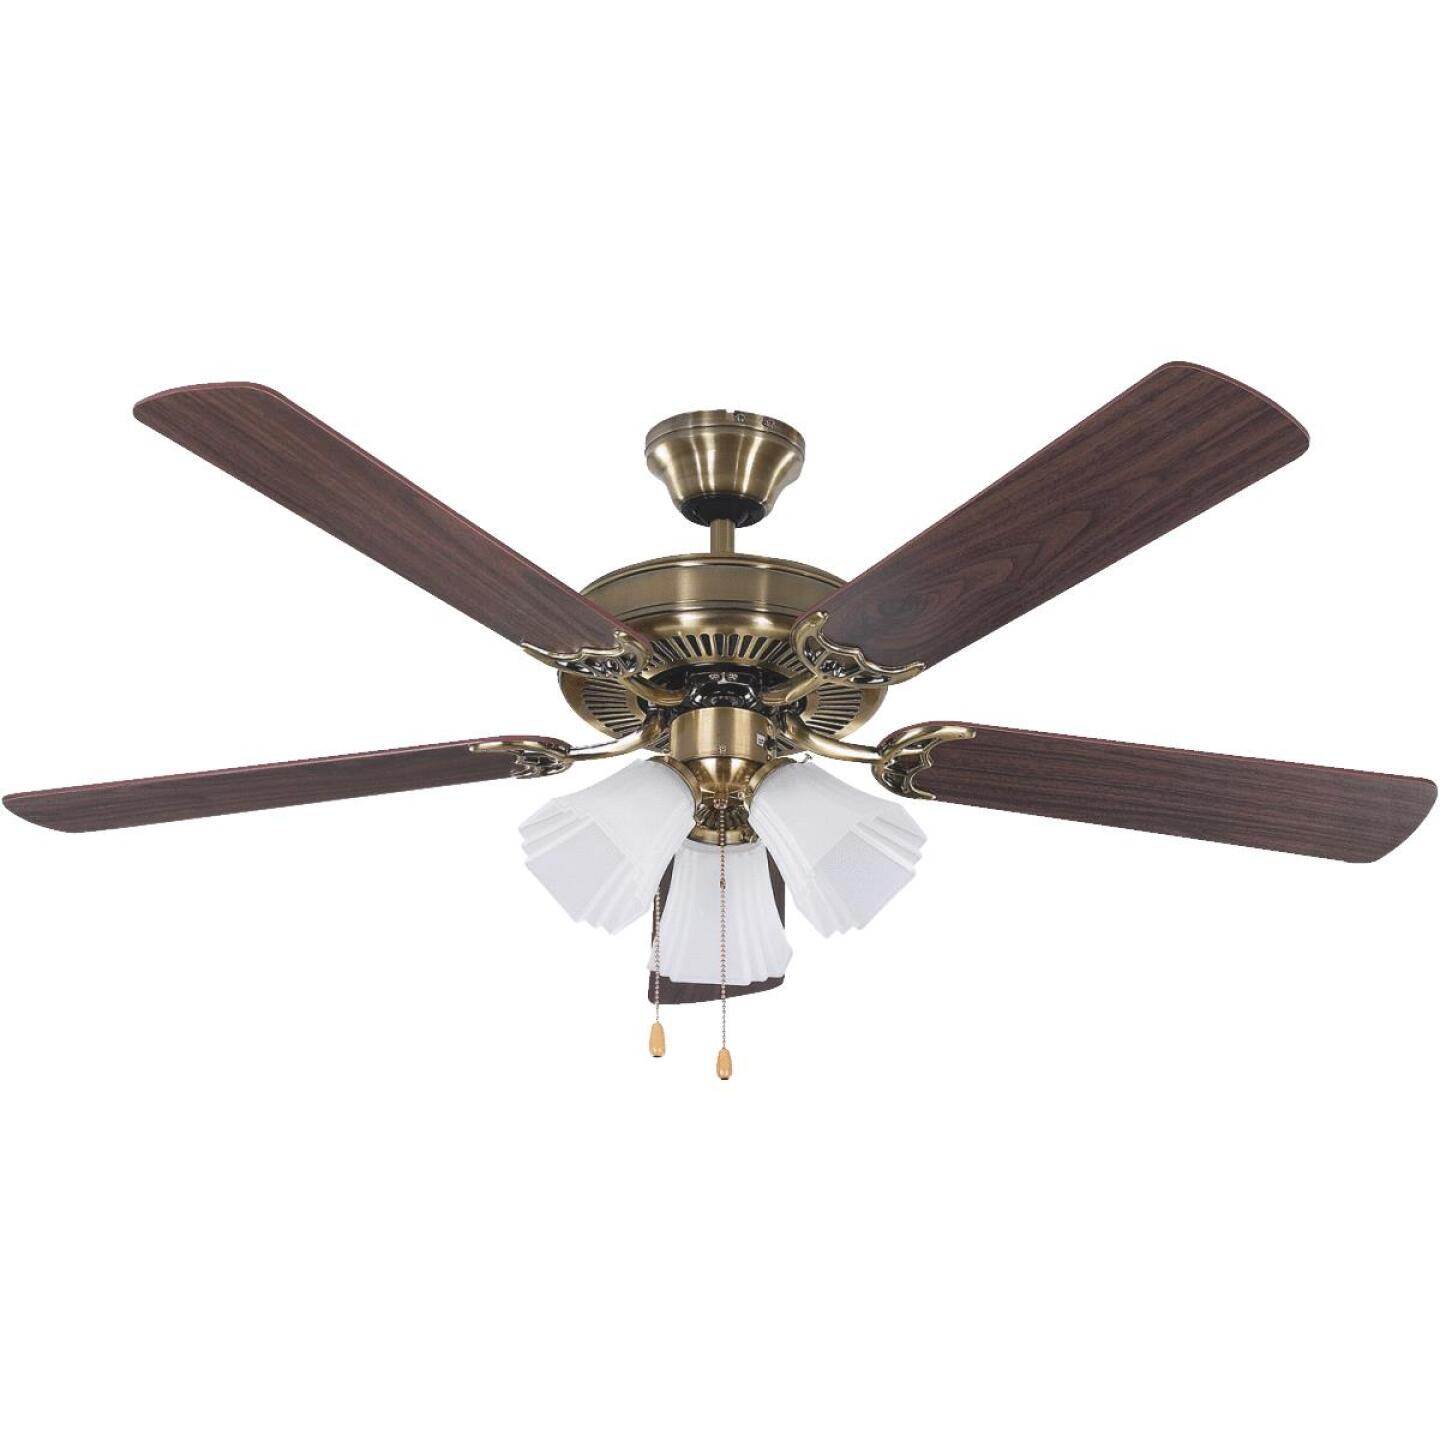 Home Impressions Sherwood 52 In. Antique Brass Ceiling Fan with Light Kit Image 1